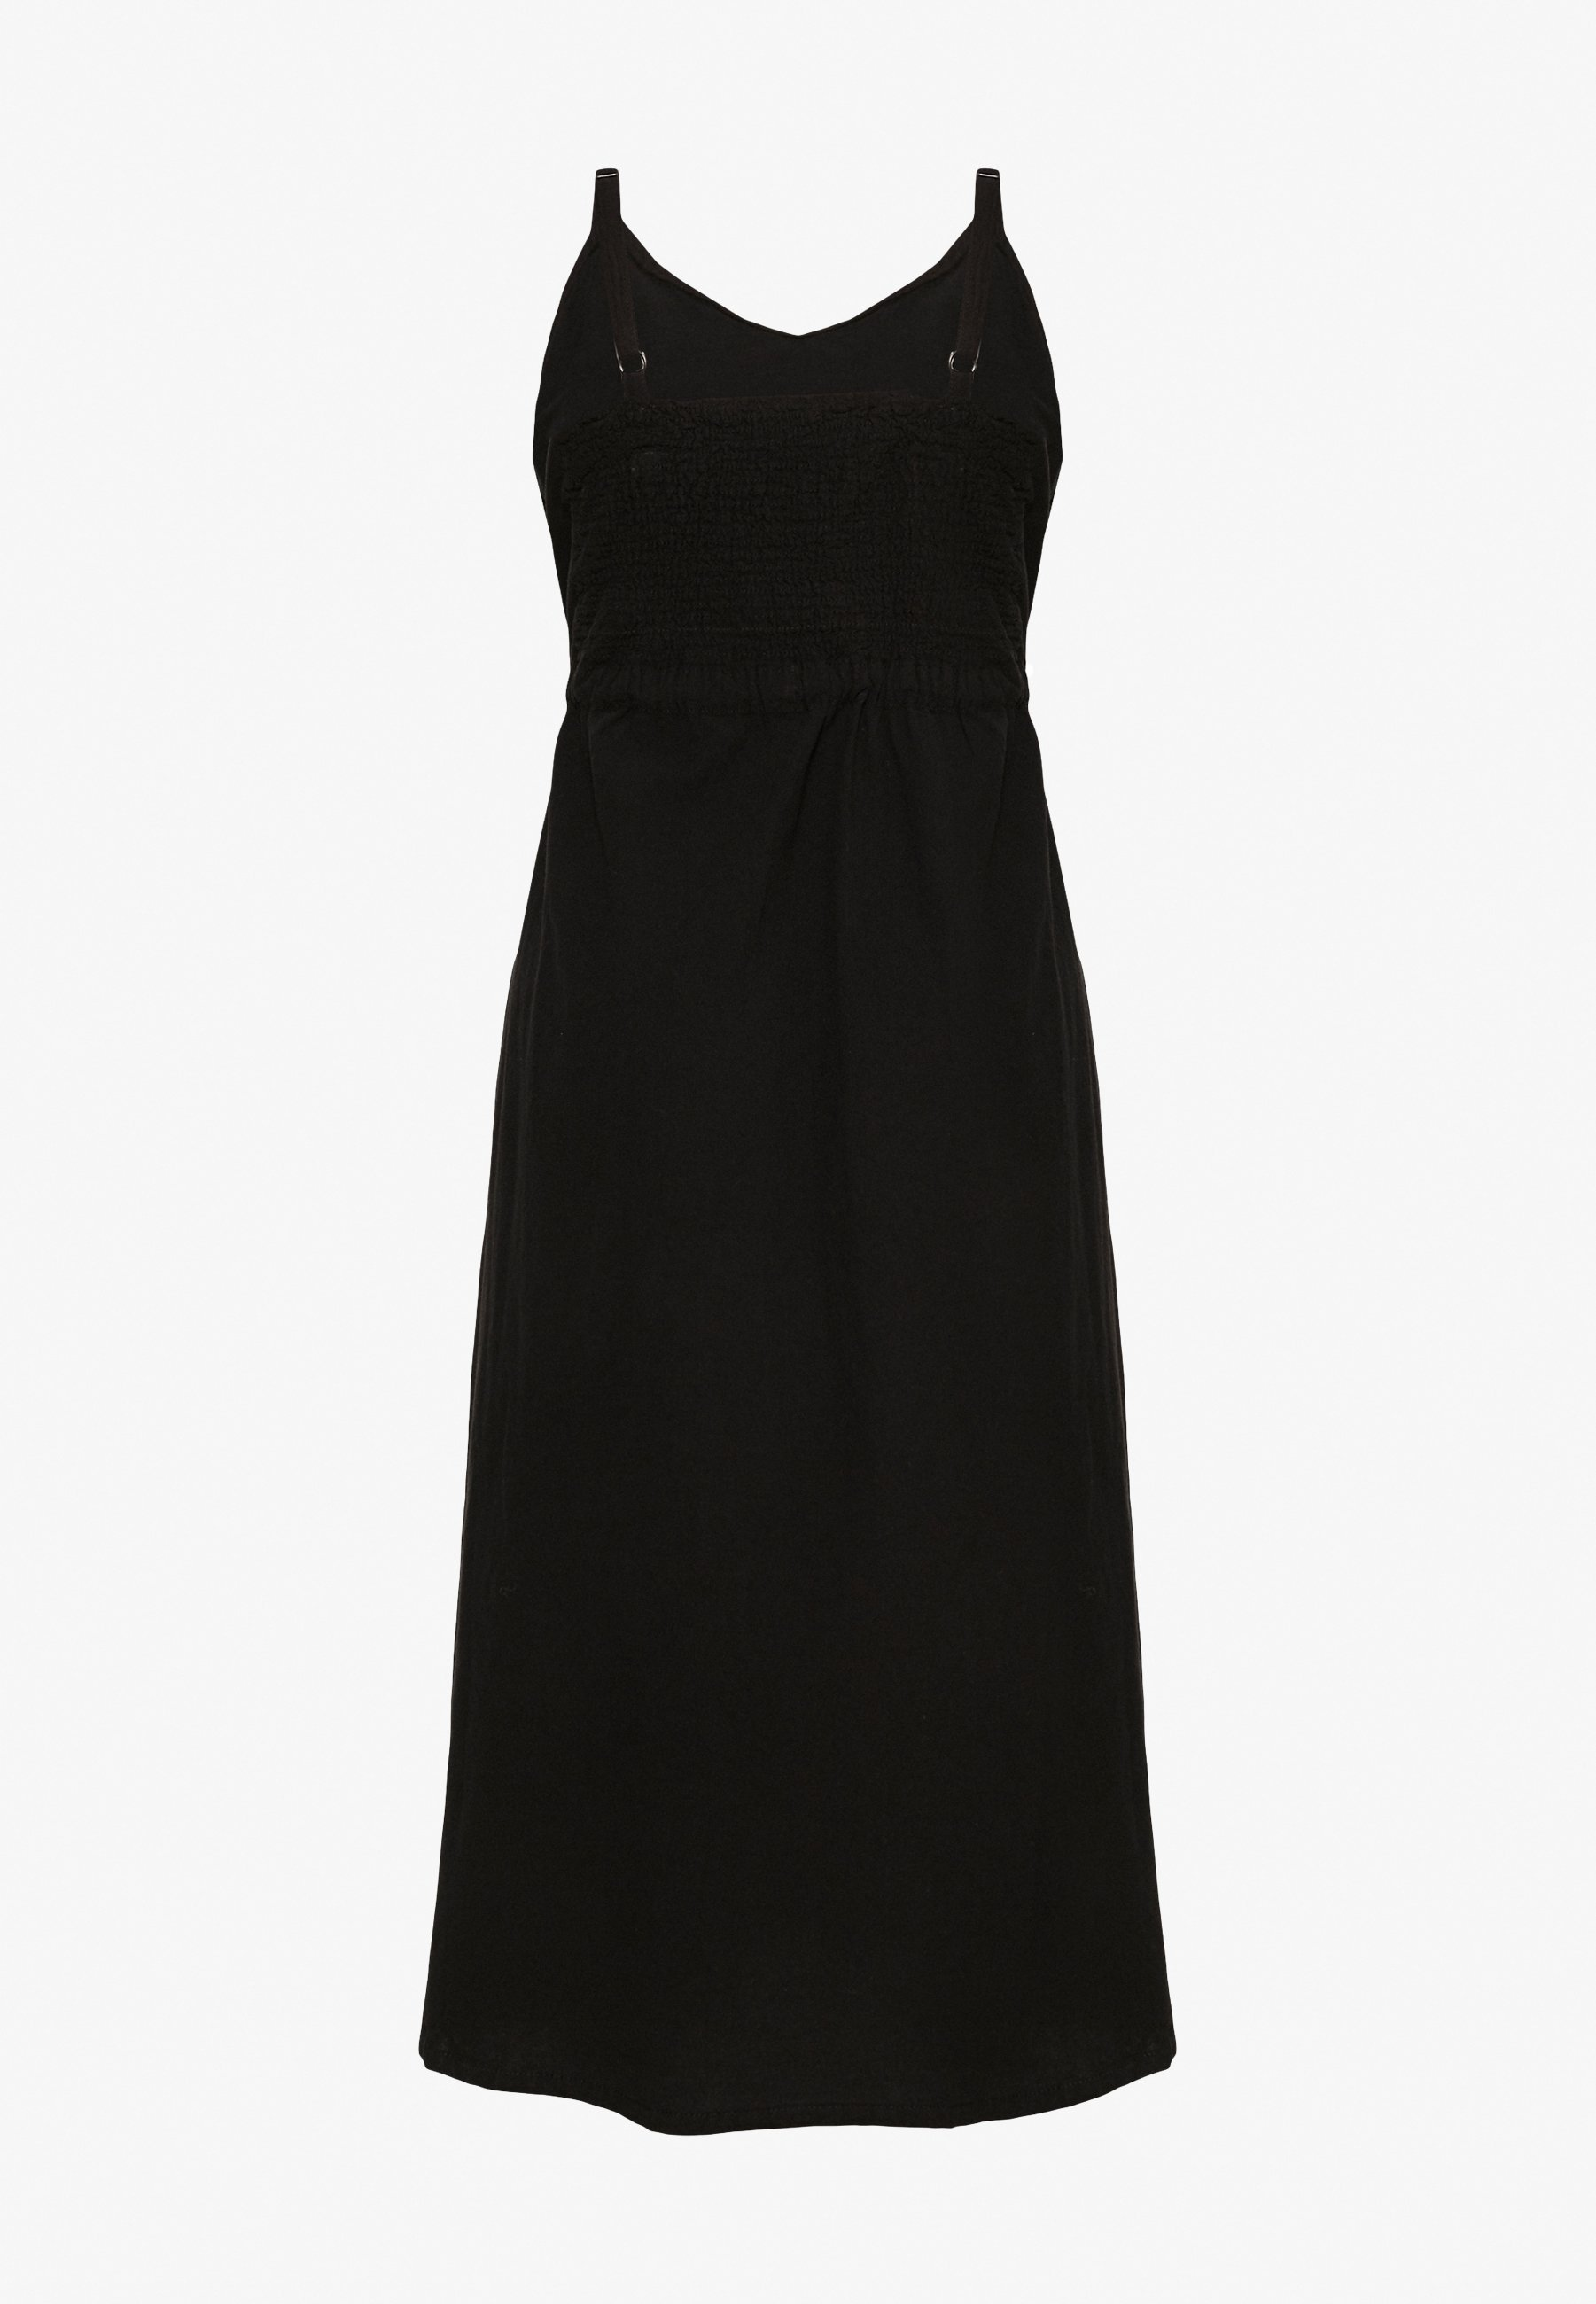 Zizzi Luise Strap Dress - Korte Jurk Black DLwLe97